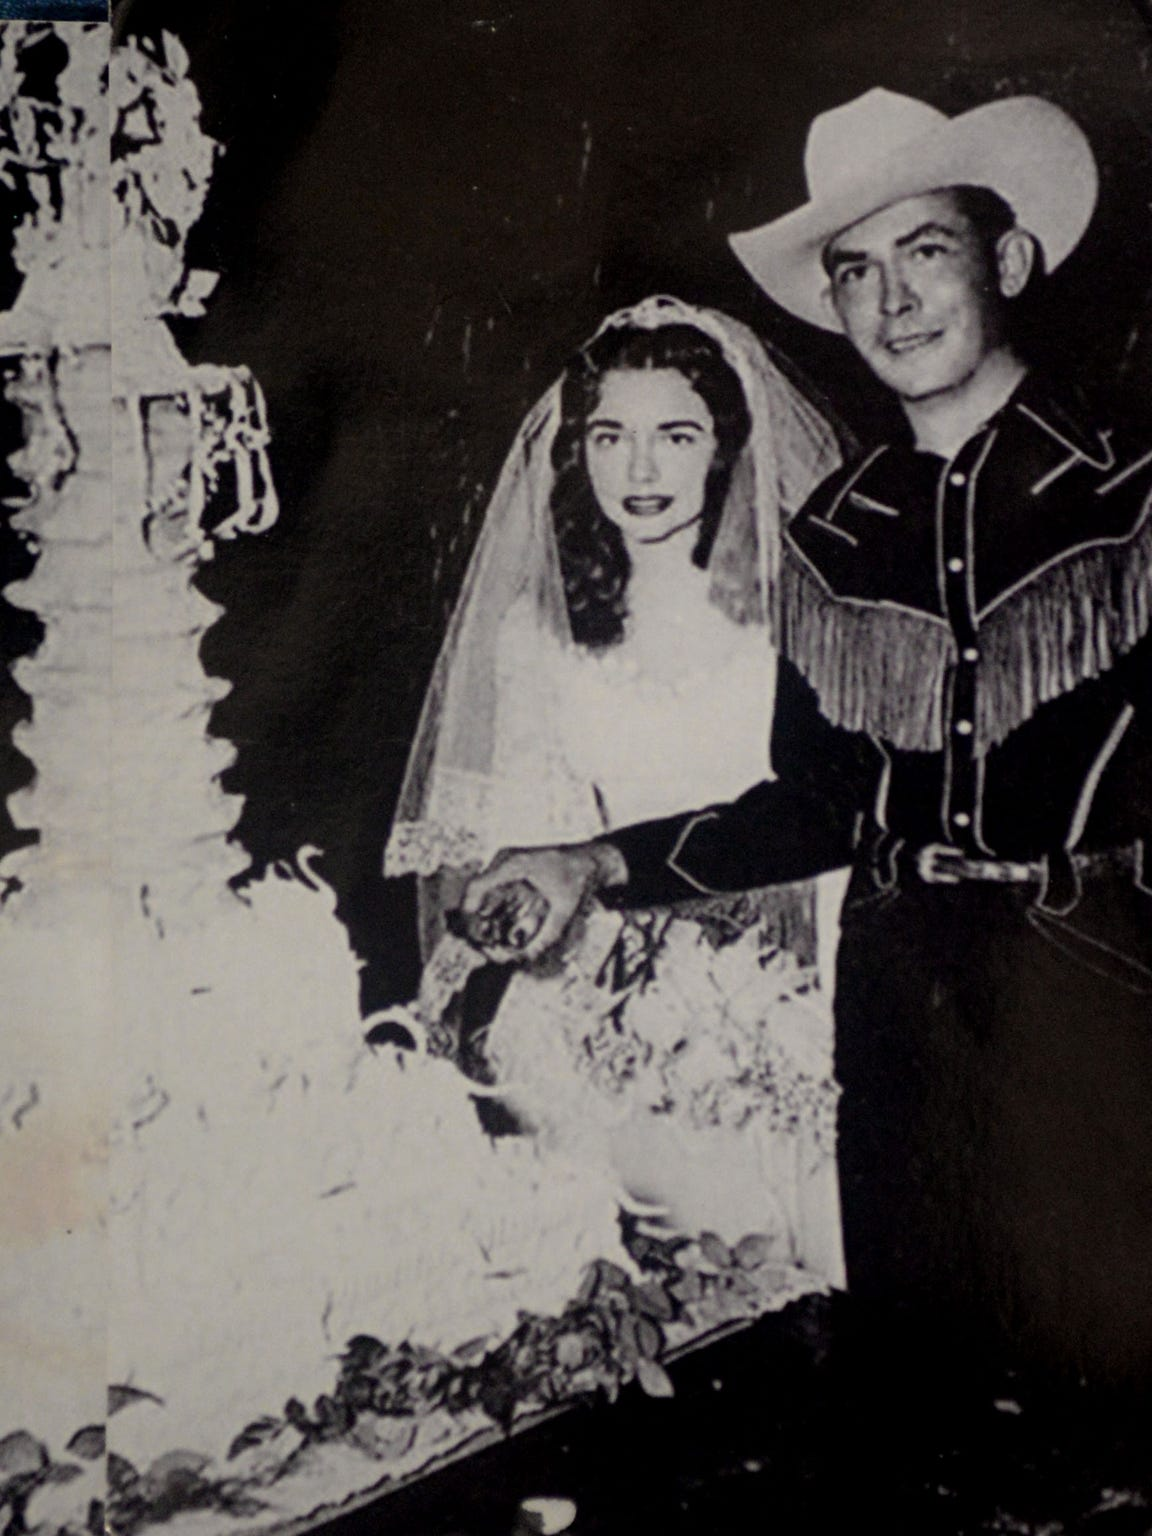 The wedding photo of Hank Williams and Billie Jean Jones with the cake.